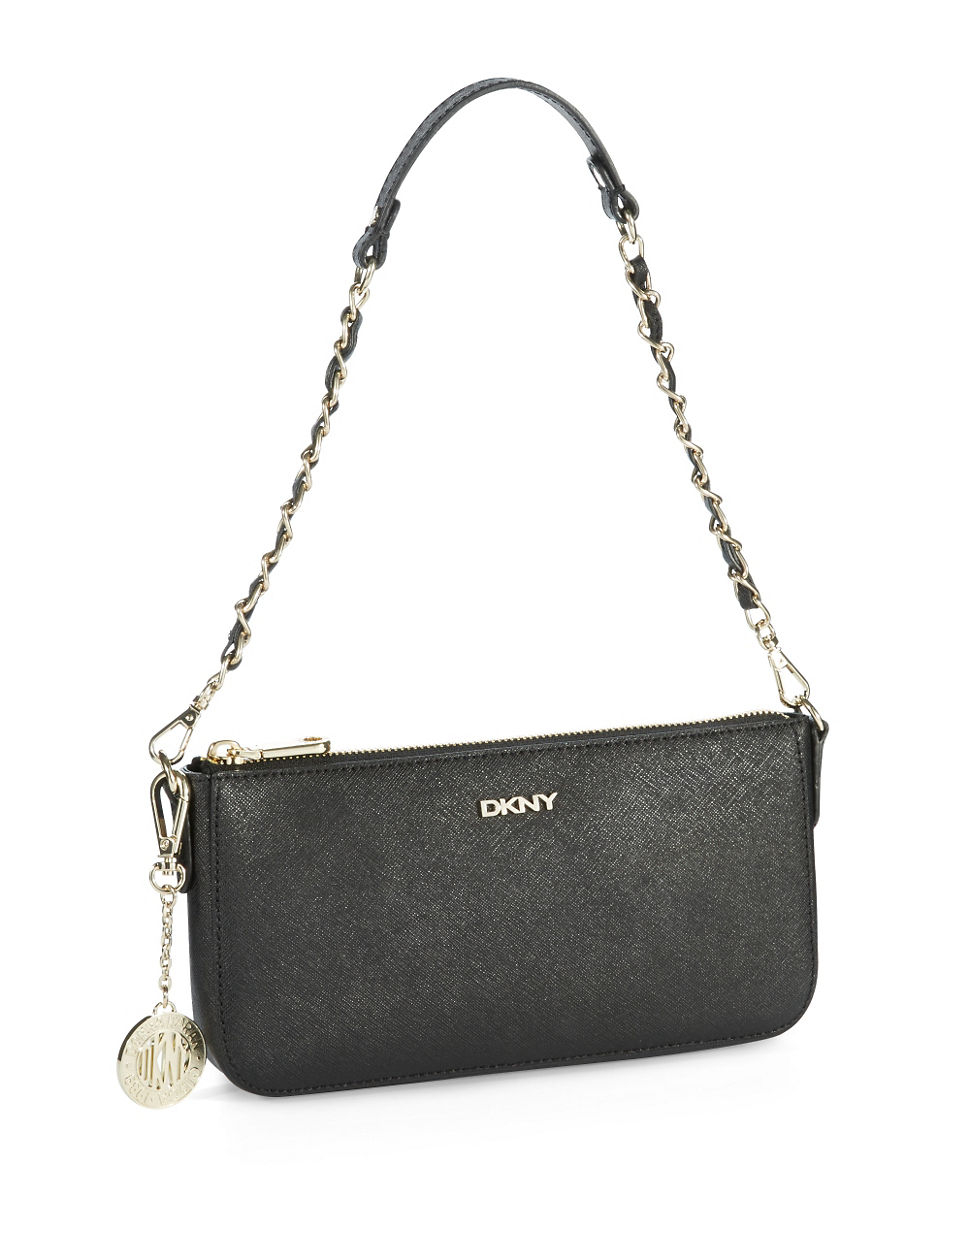 dkny zip top crossbody bag in black lyst